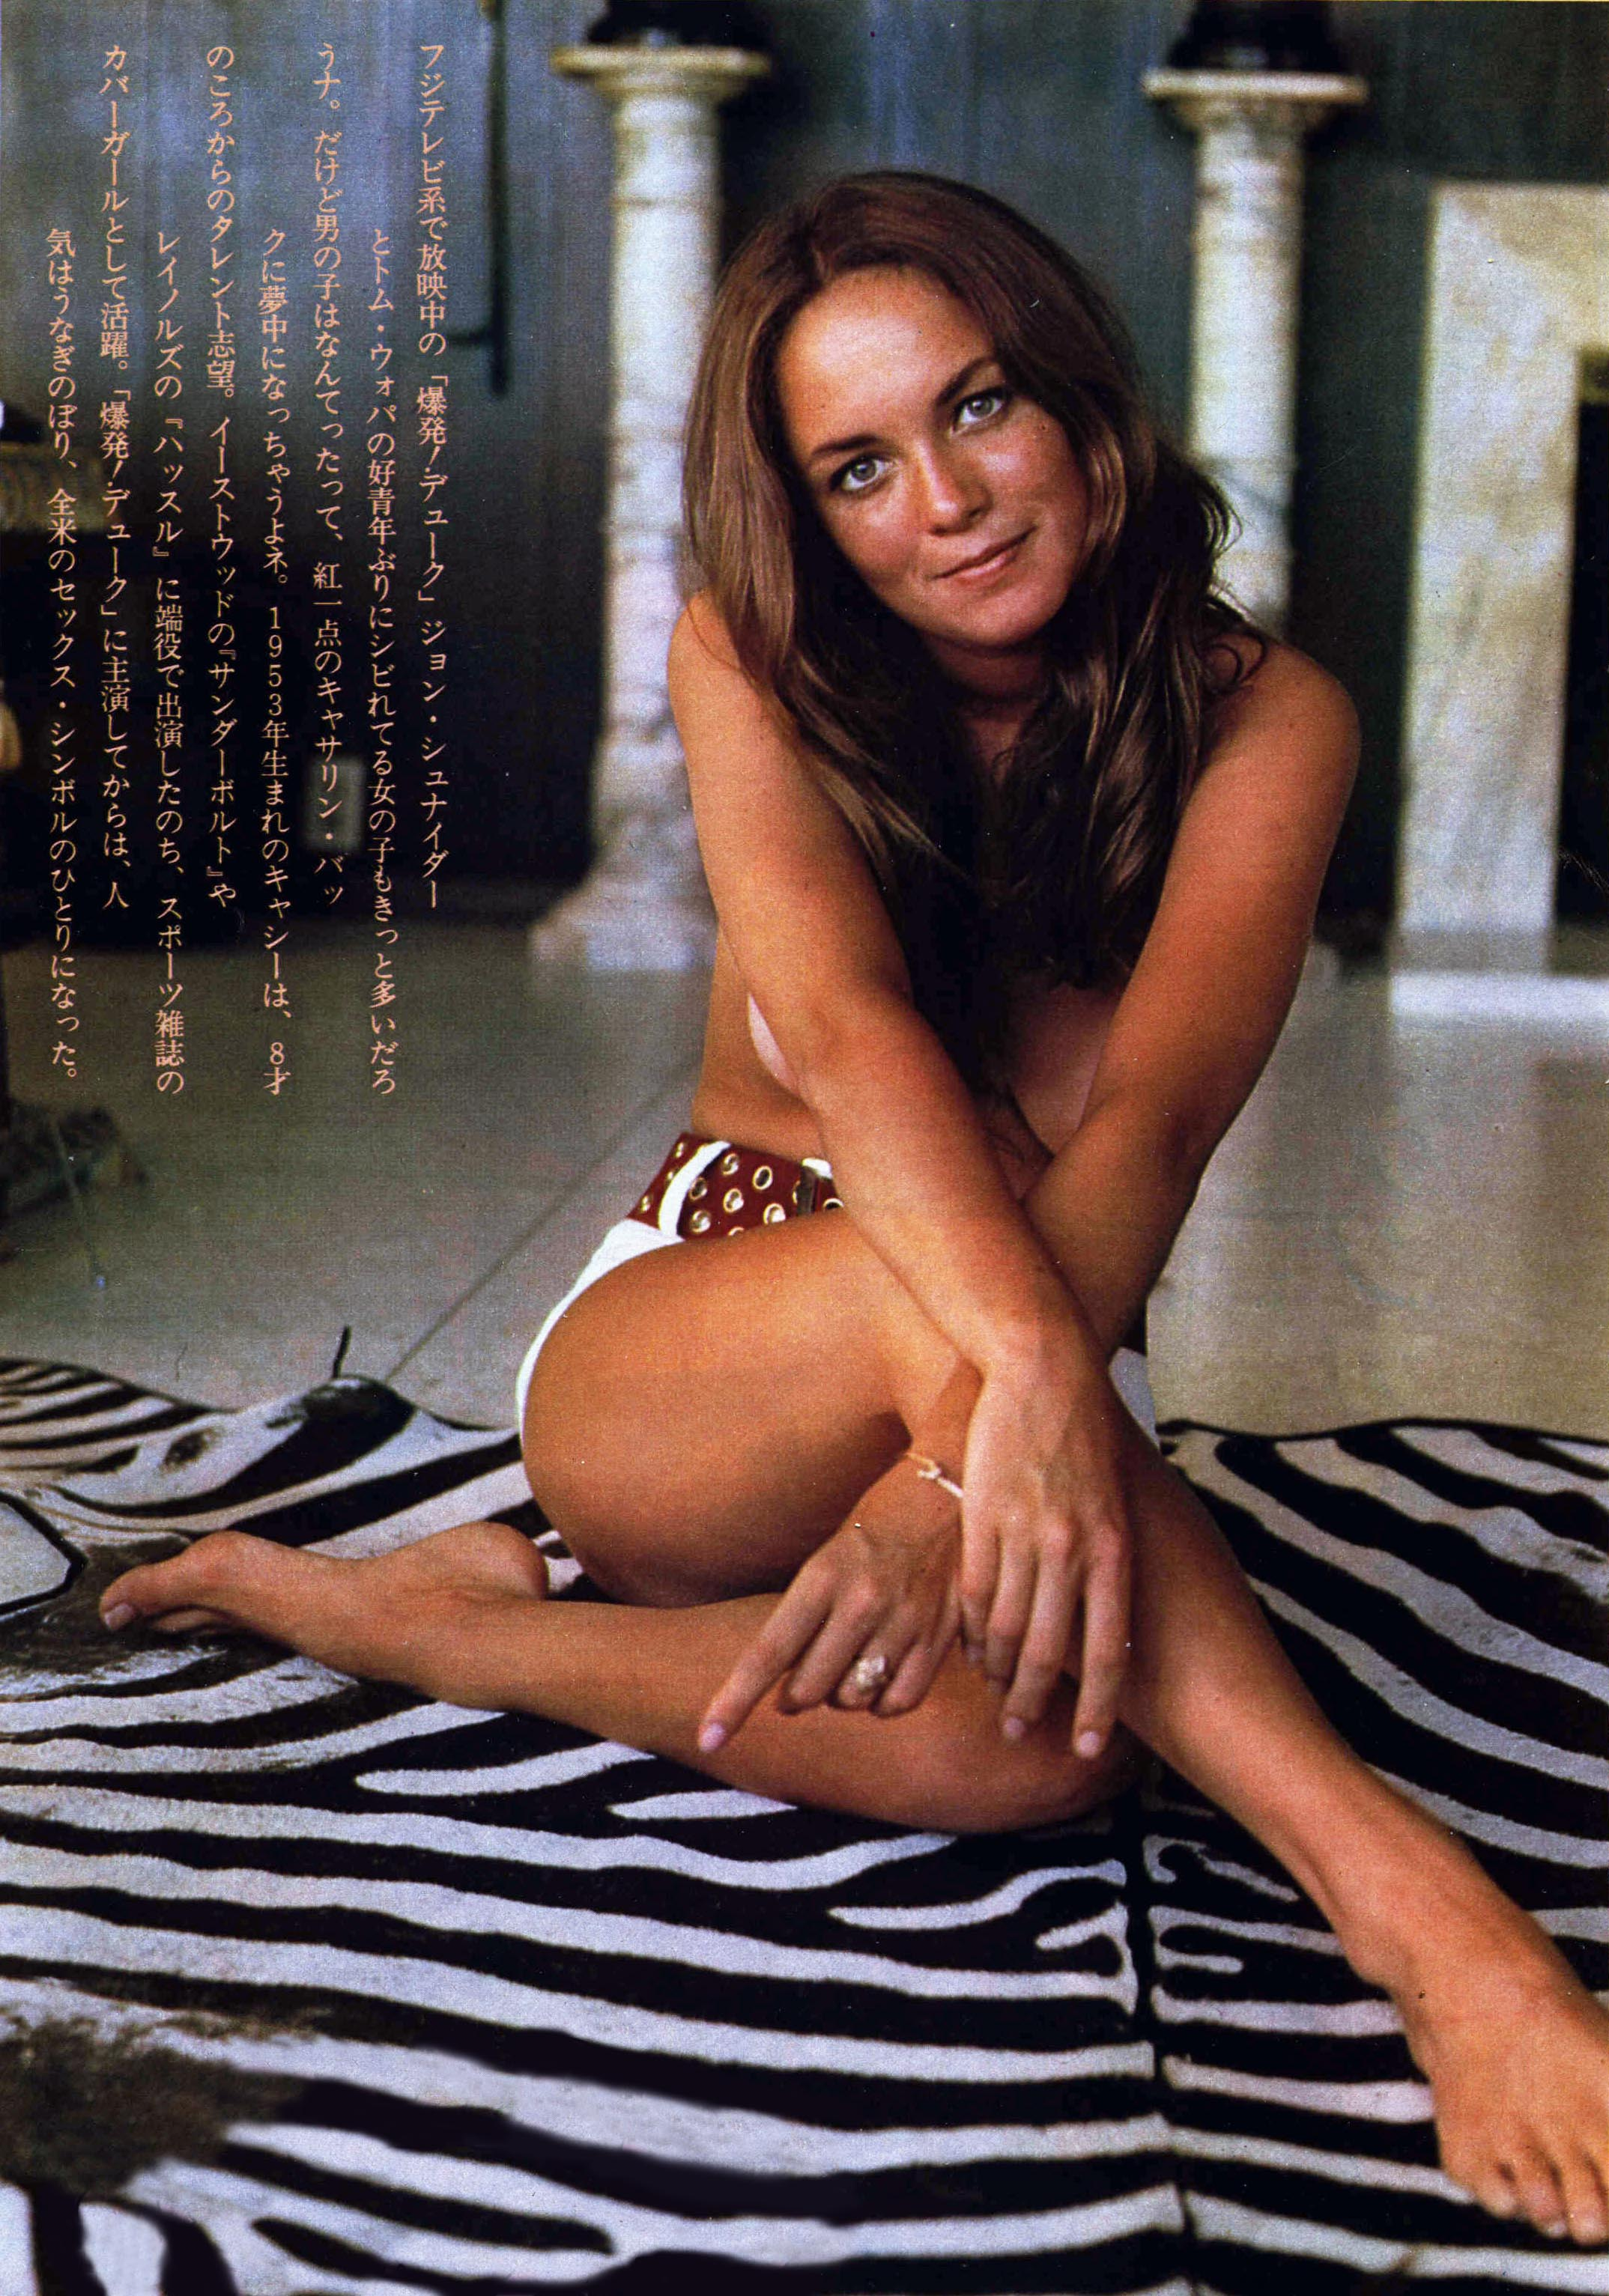 Bach catherine hustler nude picture sorry, that